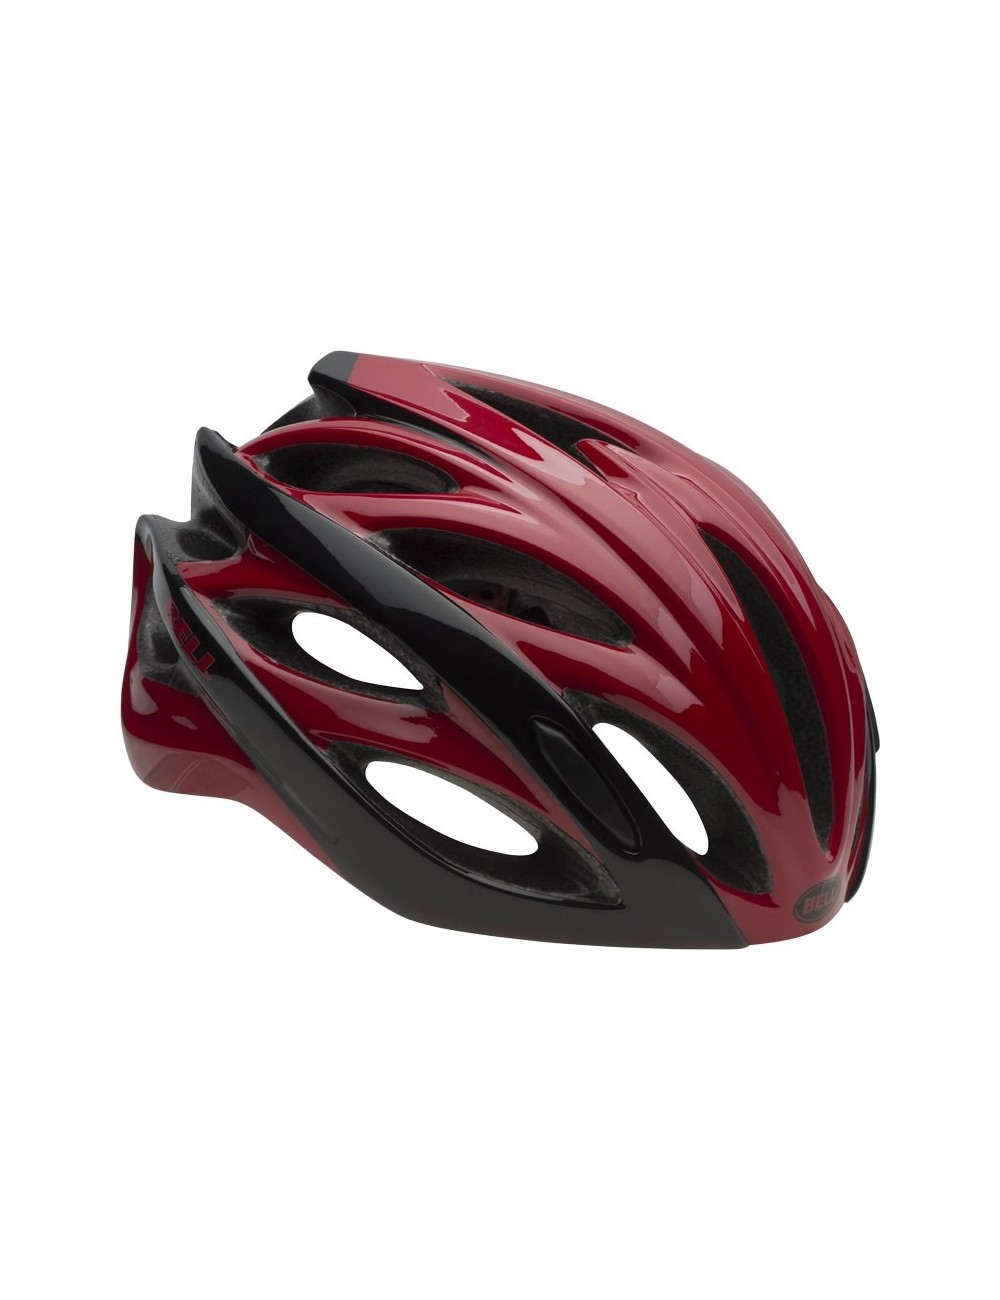 CAPACETE BELL OVERDRIVE 2016 RED/BLACK HYPERDRIVE M